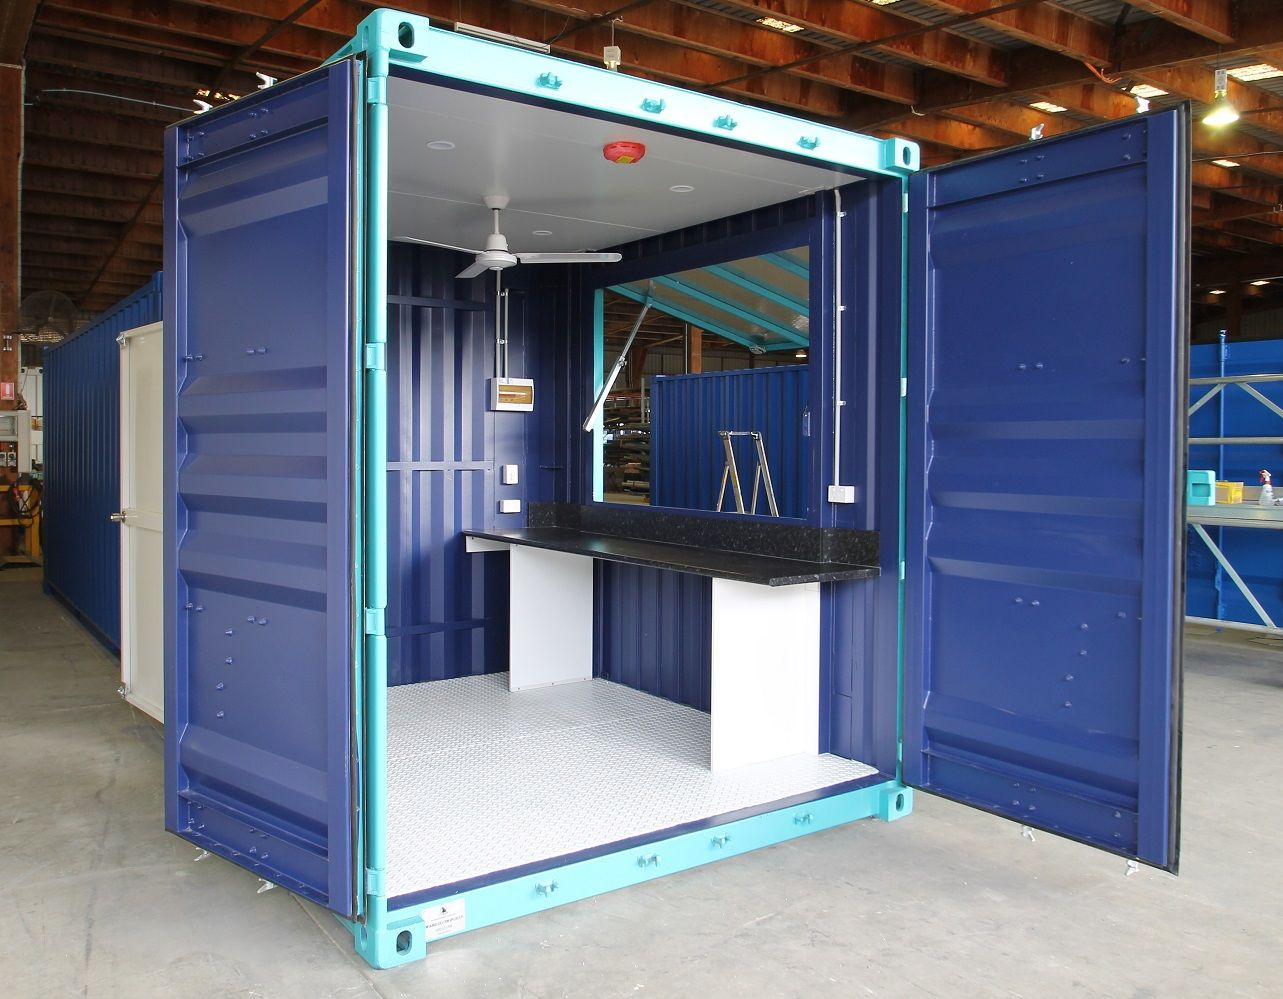 Royal Wolf S 10ft Mini Pop Up Container Shops Offer The Perfect Combination Of Portability And Security For Container Shop Container Coffee Shop Container Cafe